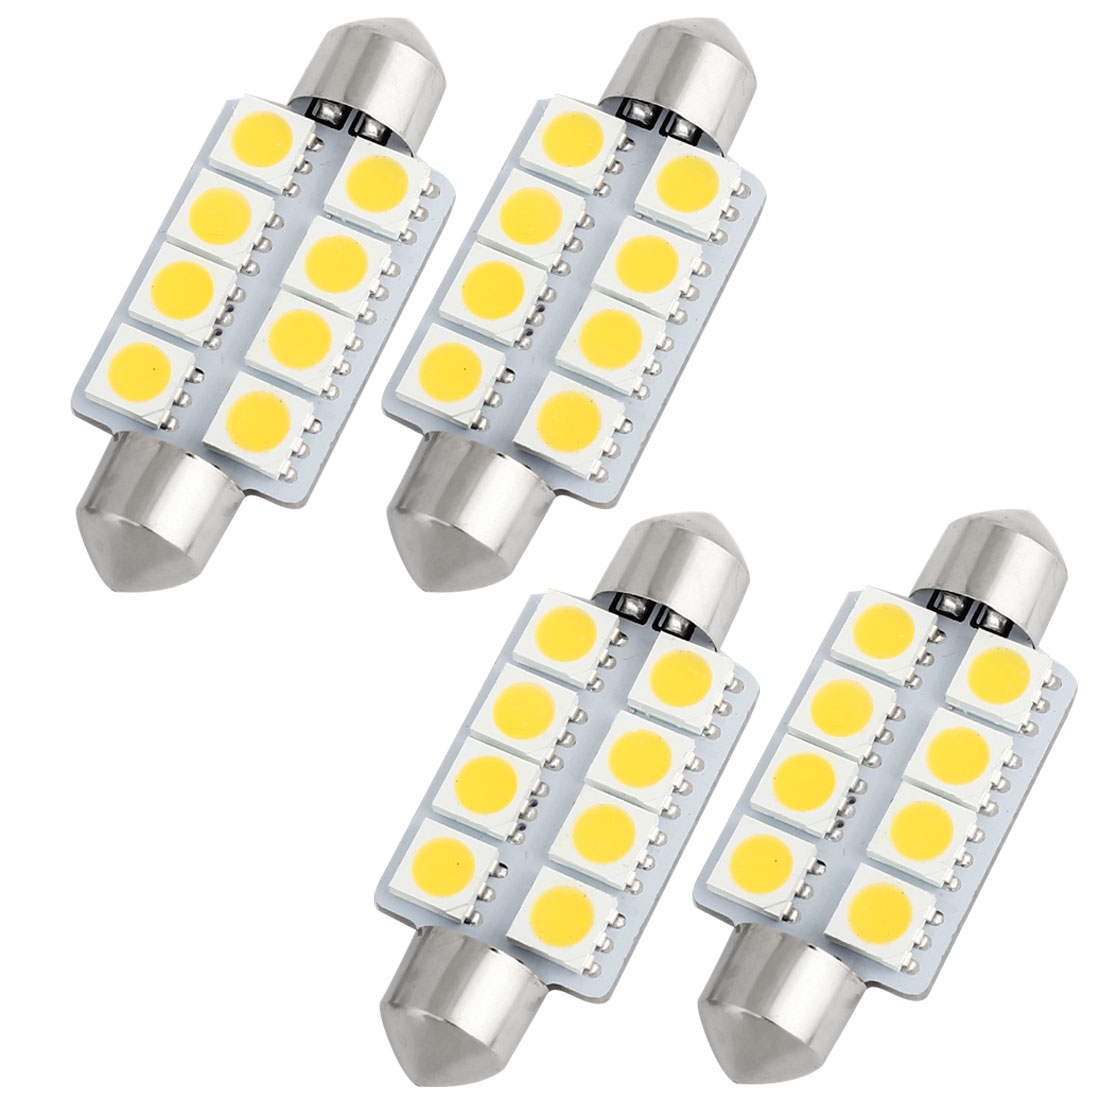 4pcs 41mm 5050 SMD 8-LED Festoon Dome Light Warm White 6413 211-2 212-2 560 Internal